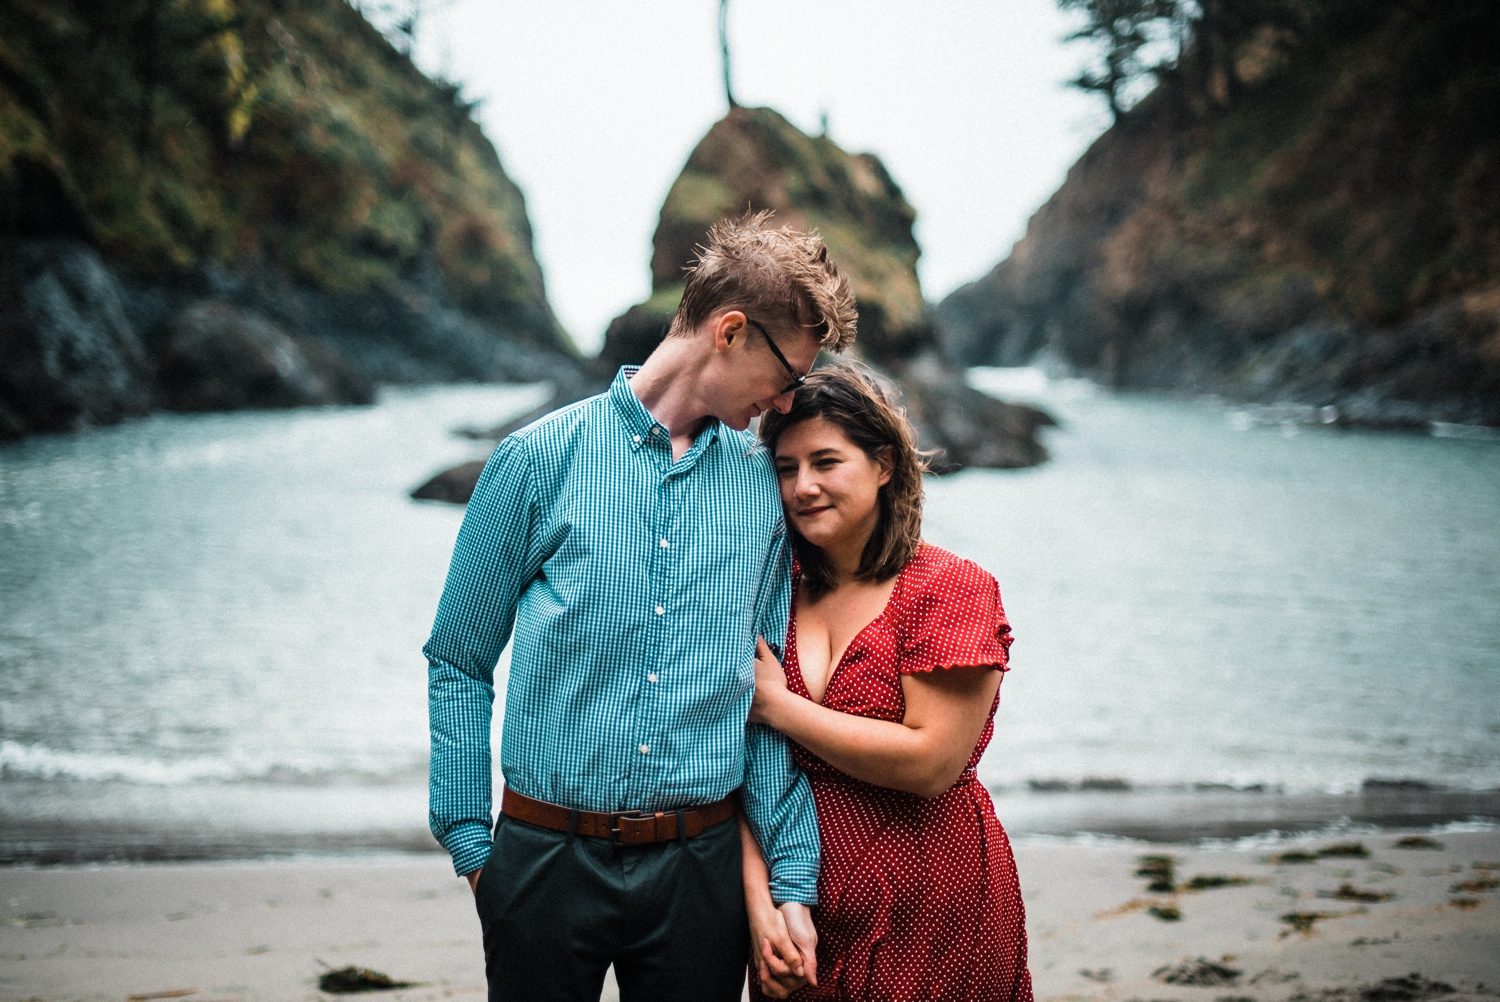 Cape_Disappointment_Engagment_Kailey_Alex_The_Foxes_Photography_095.jpg